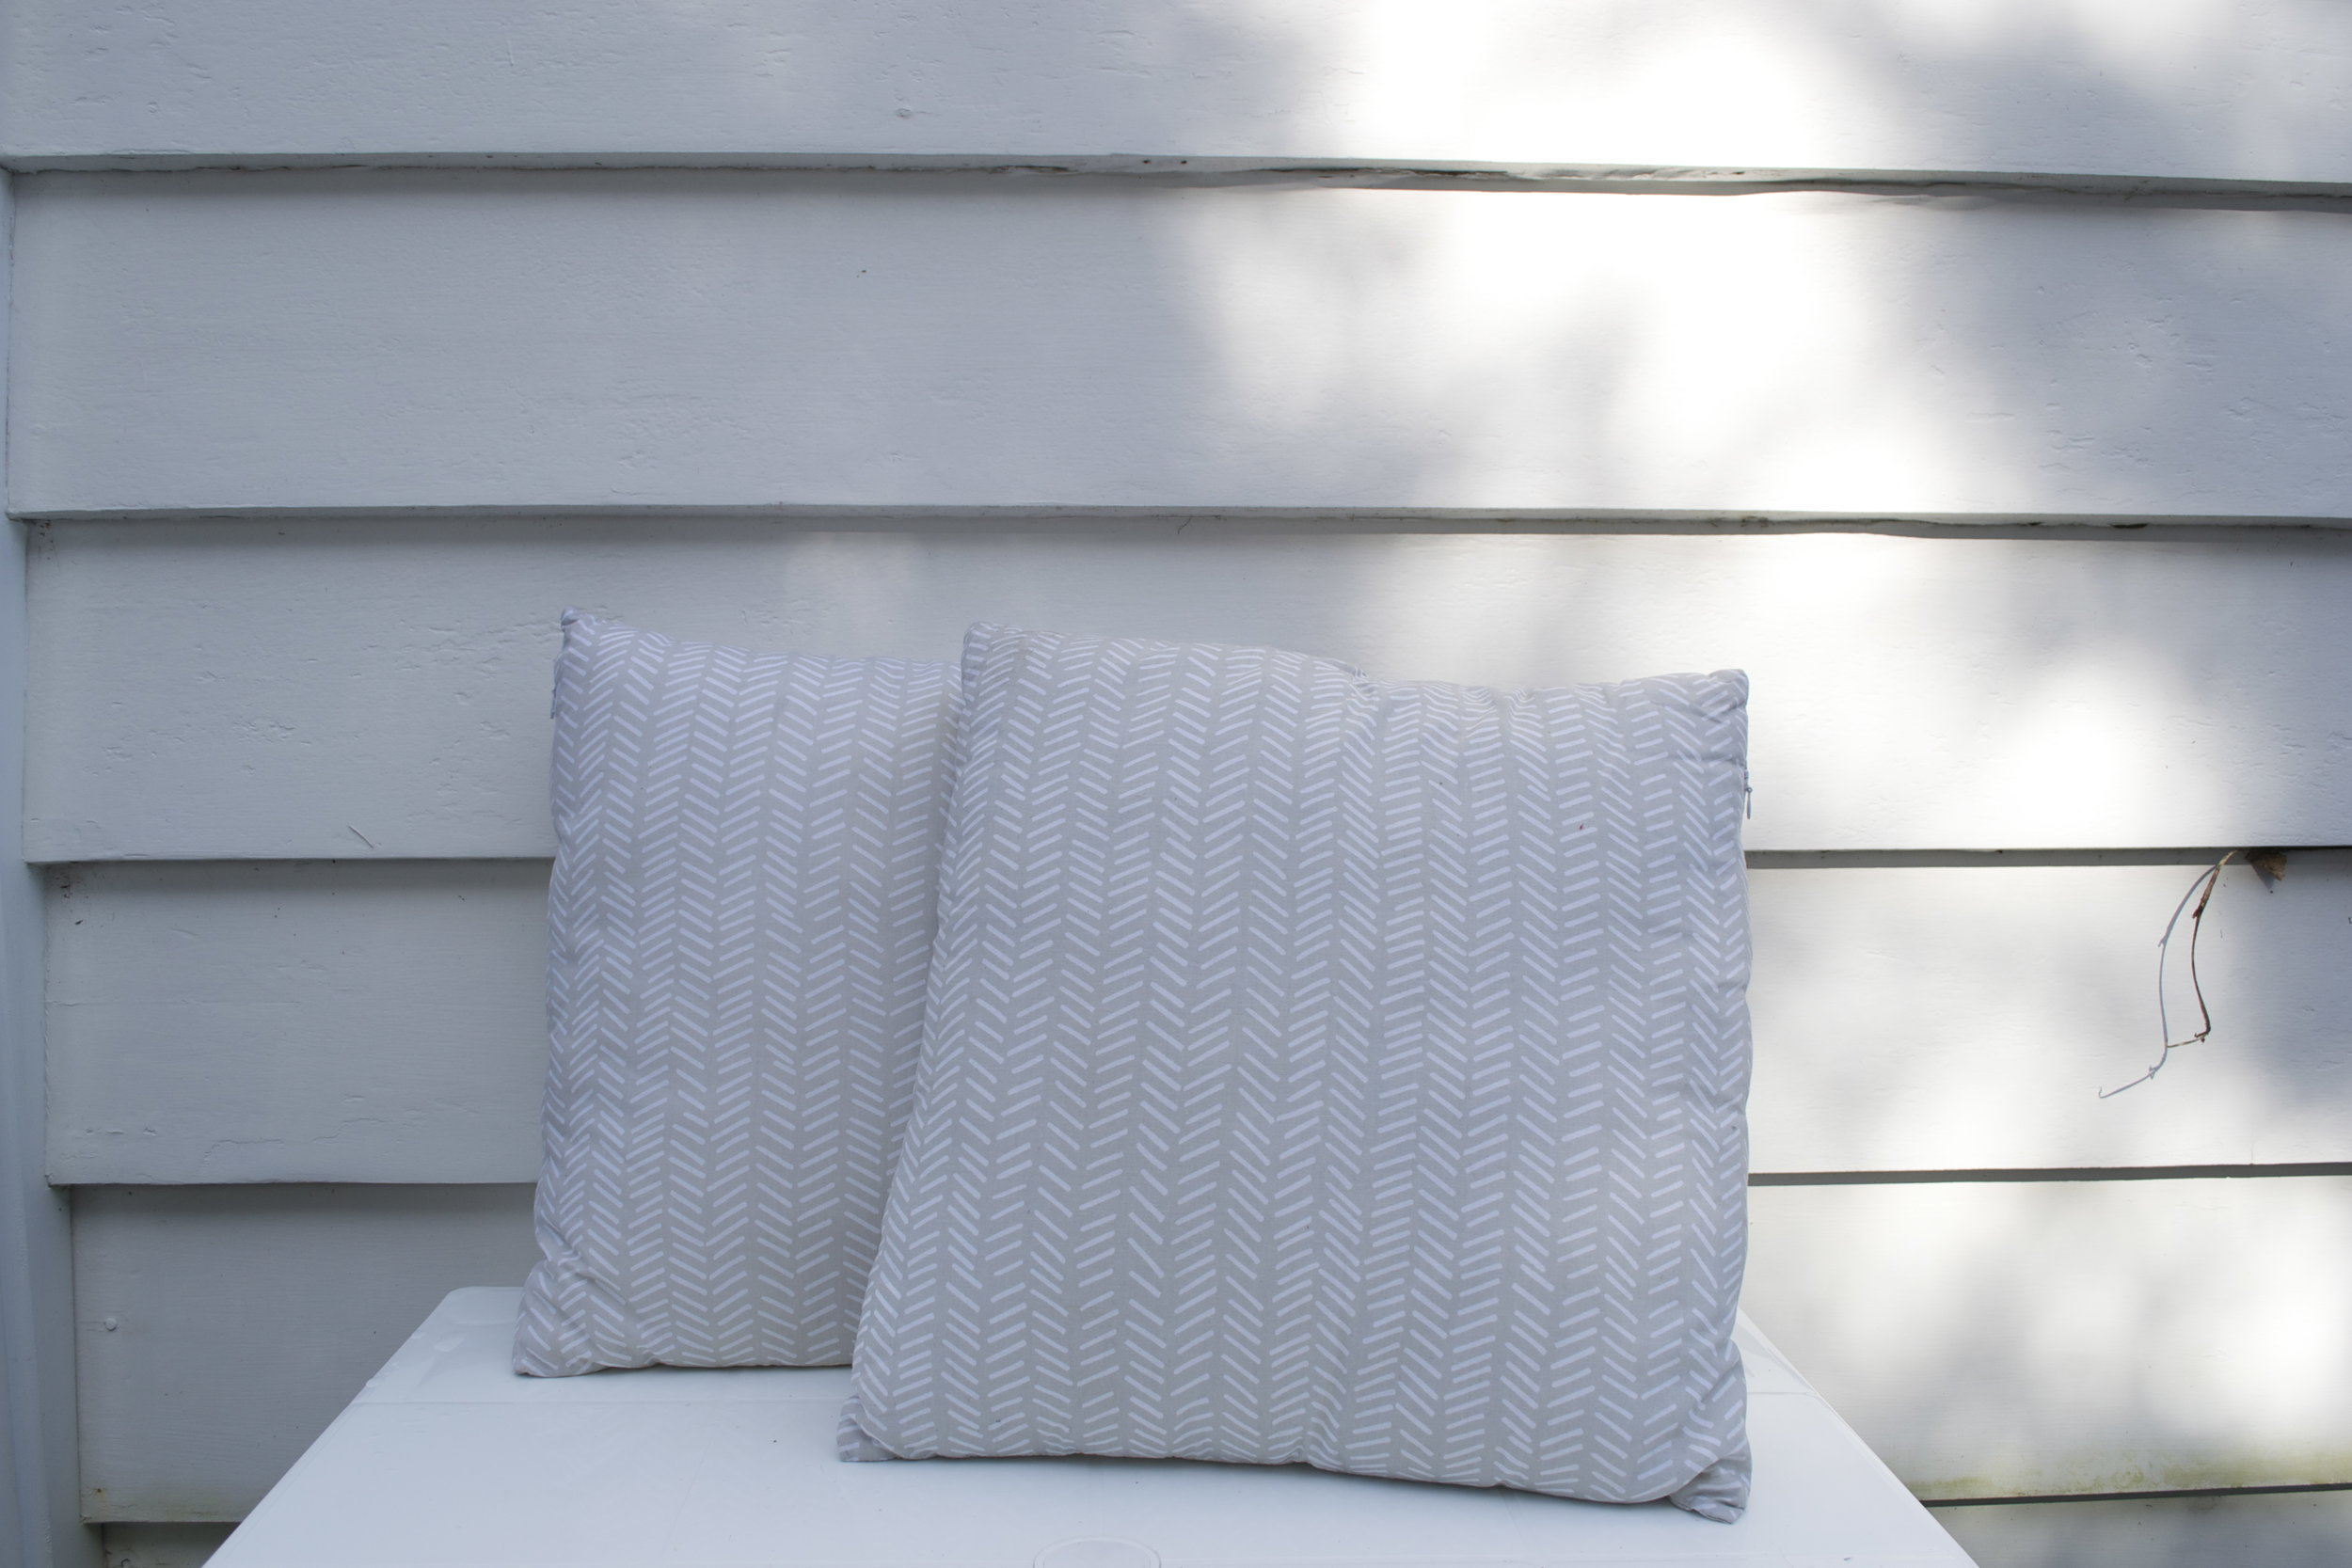 patterned cushion x2 $3 each